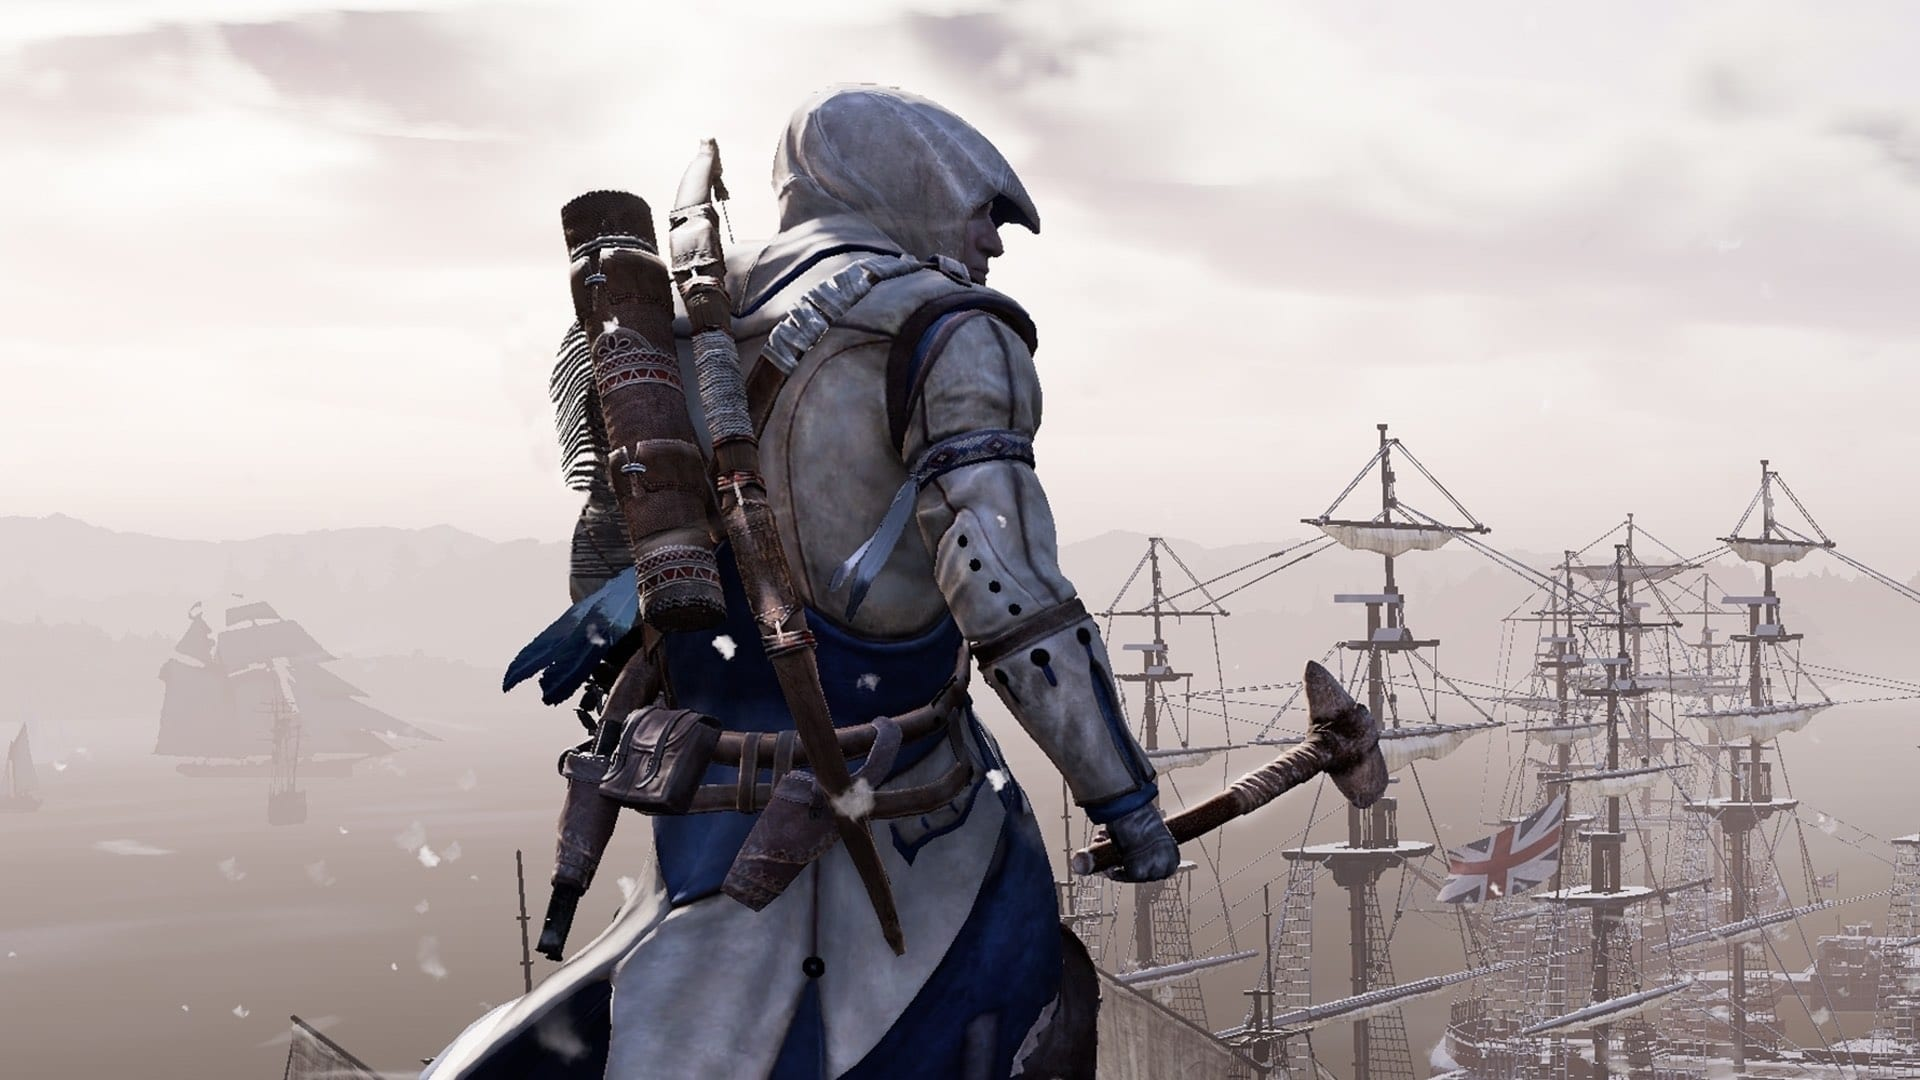 Fans Call For Assassin S Creed Ragnarok To Not Be An Rpg